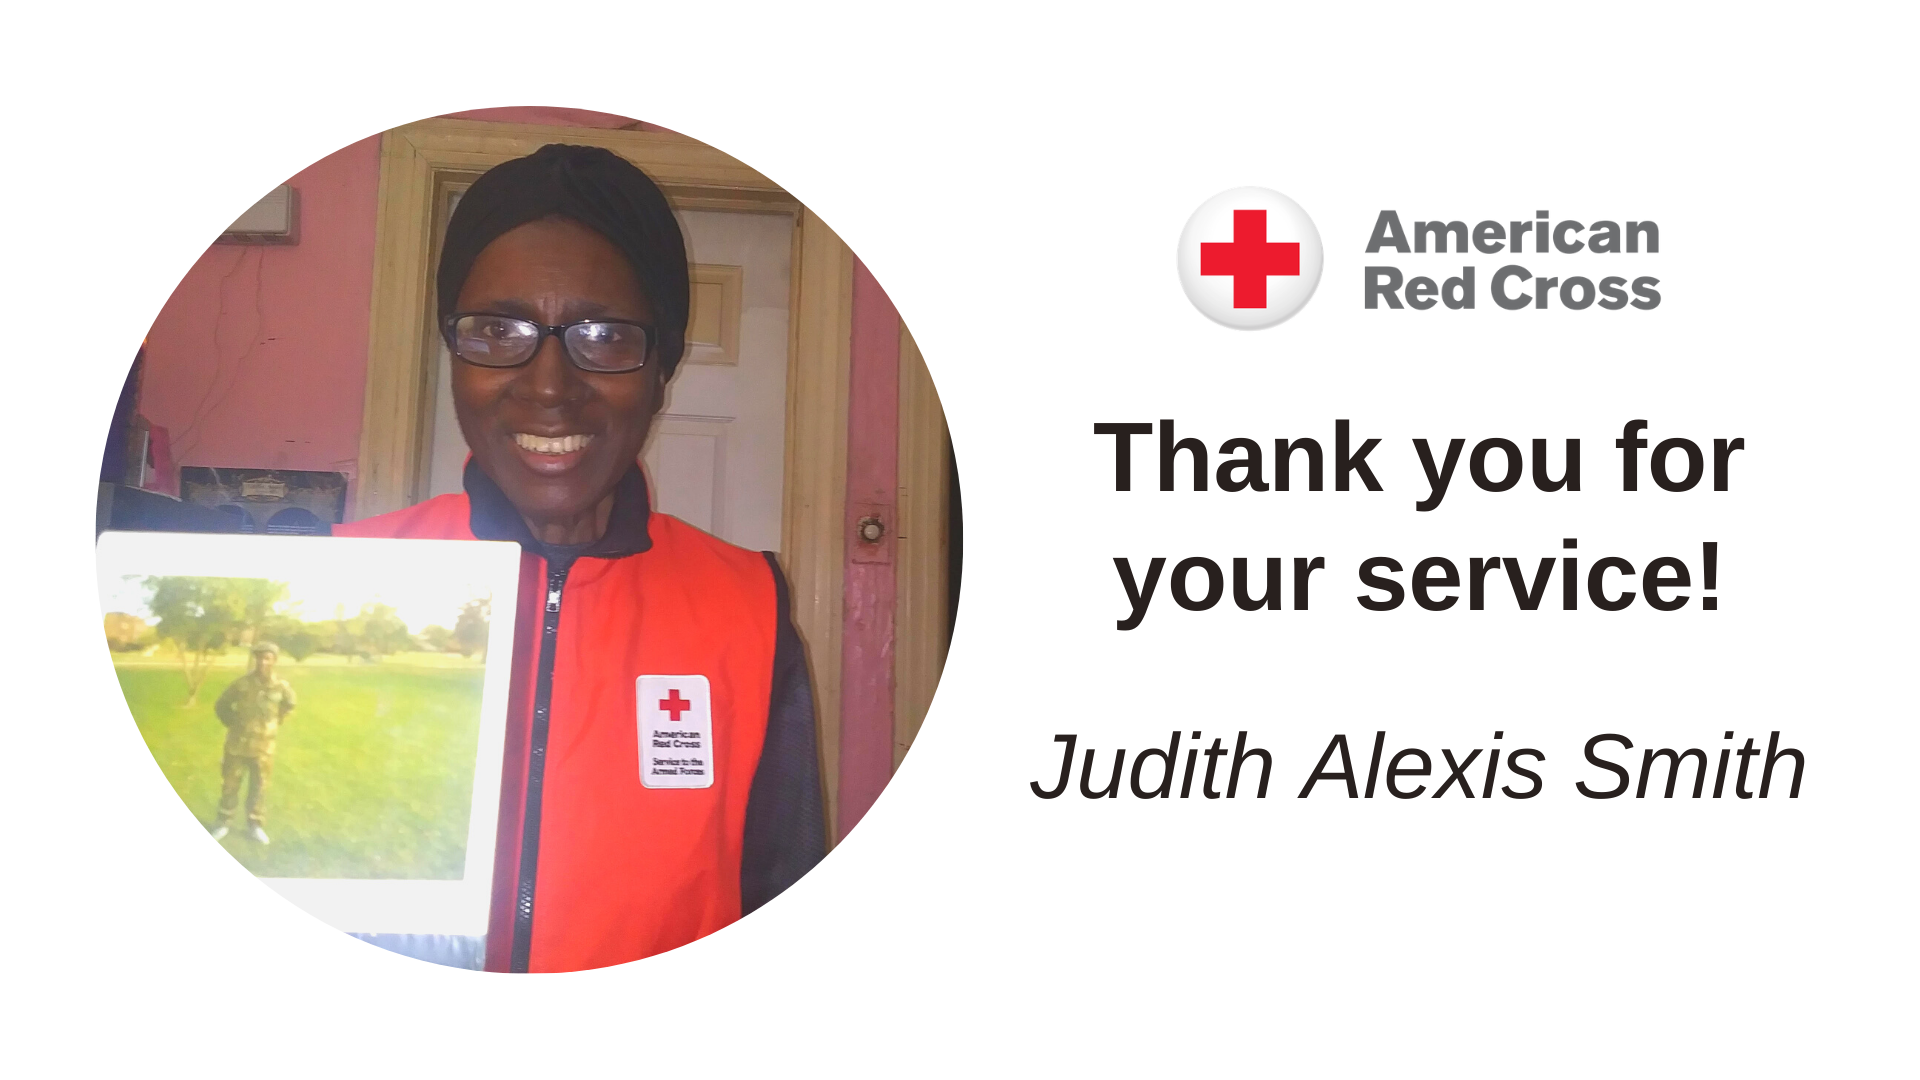 Thank you for your service! Judith Alexis Smith